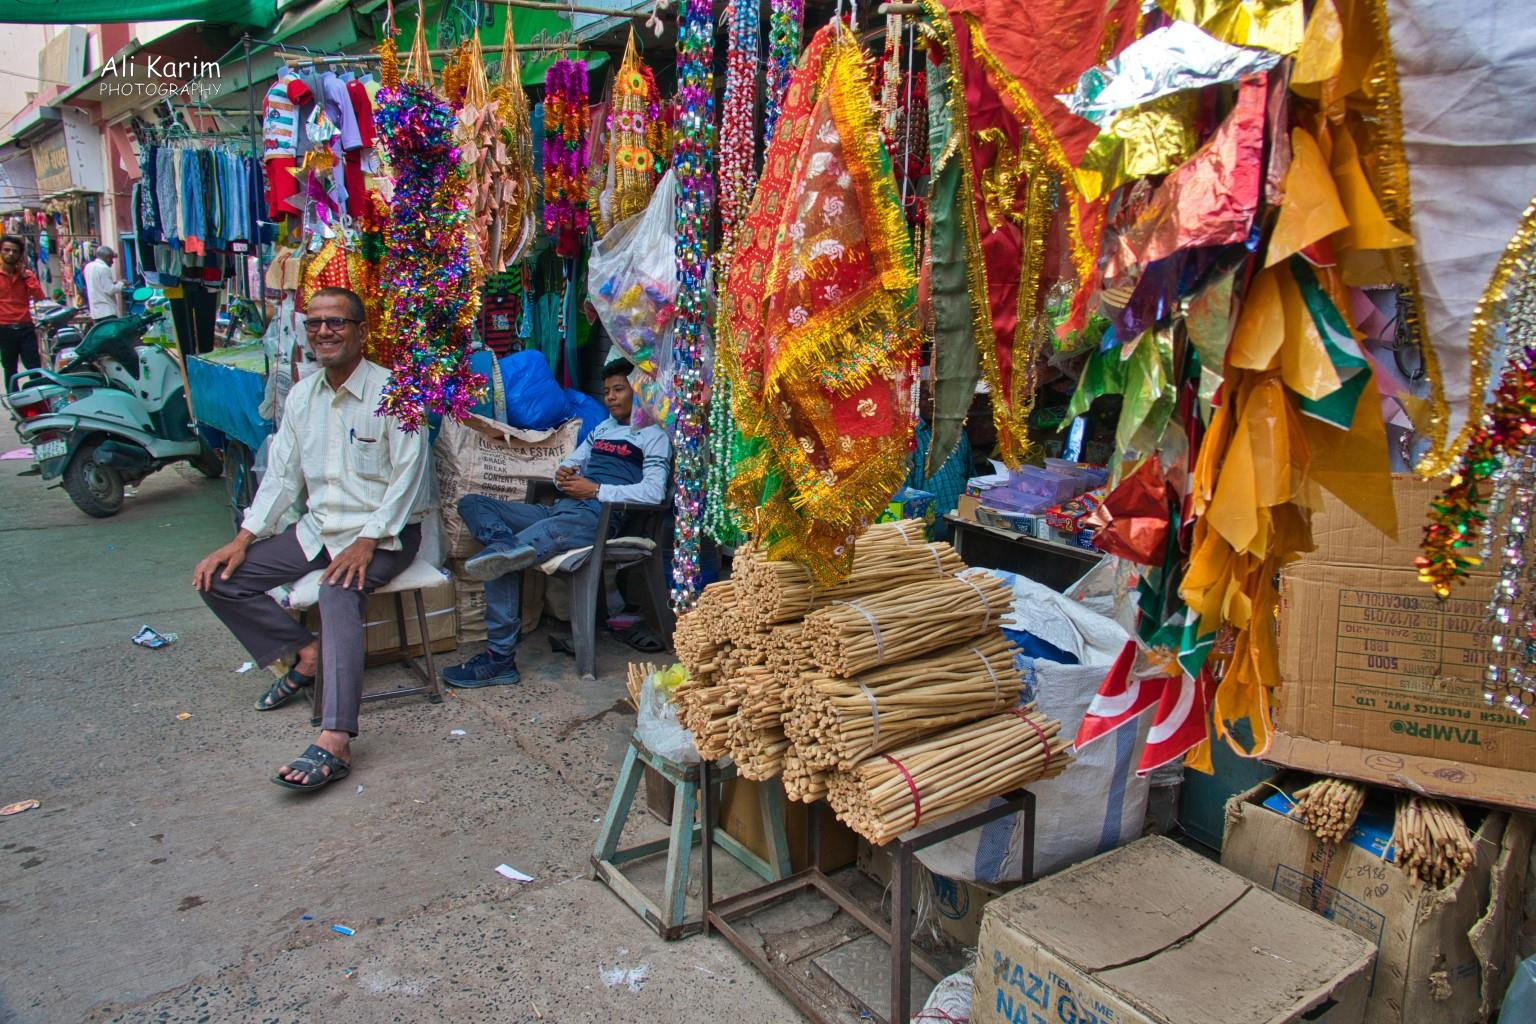 More Bhuj Everything for sale, including the sticks (foreground) that are used as toothbrushes